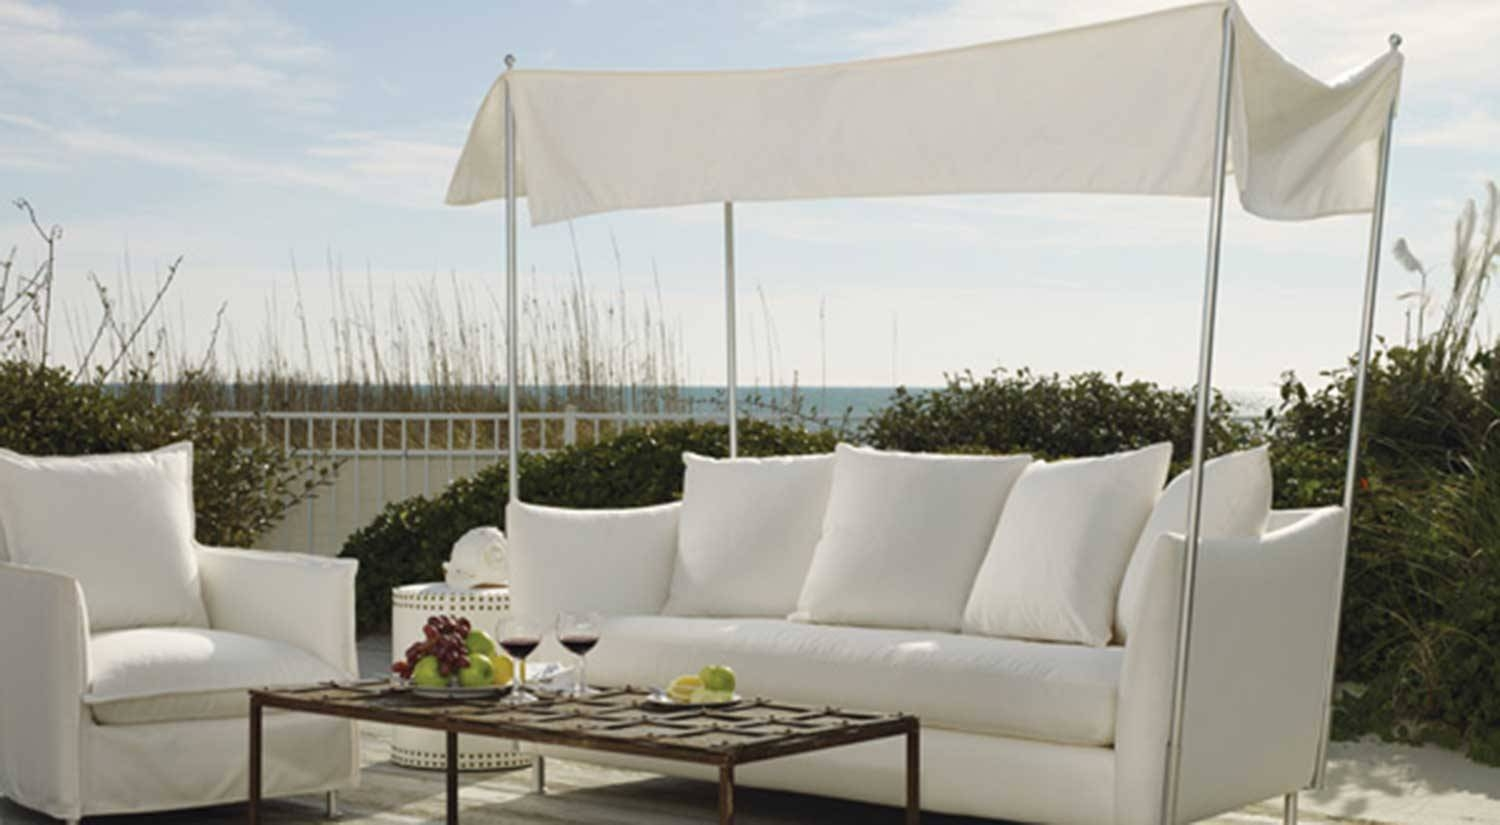 Circle Furniture - Oleander Outdoor Sofa With Canopy | Outdoor with Outdoor Sofas With Canopy (Image 4 of 30)